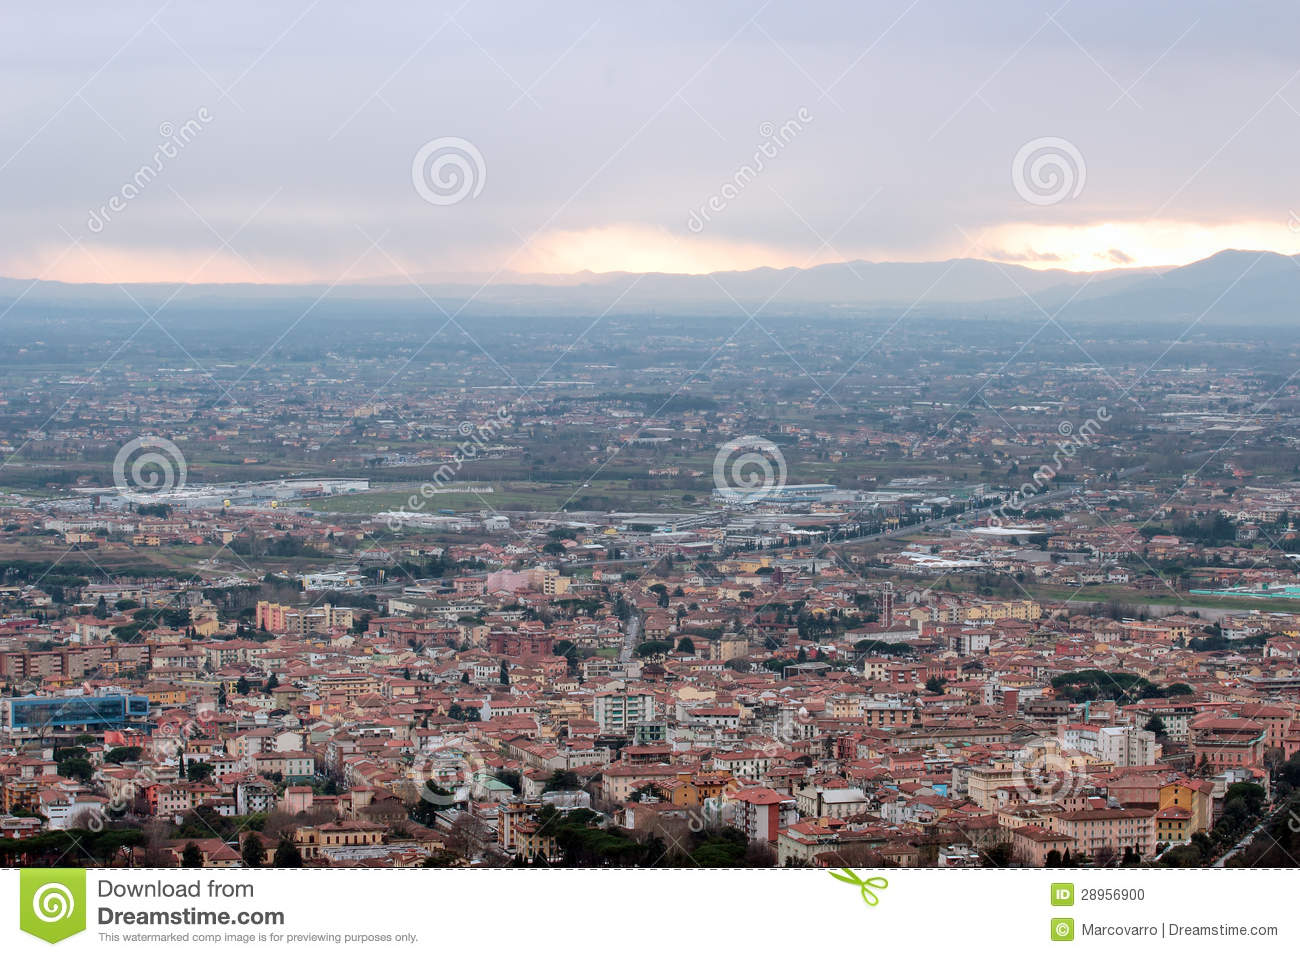 Montecatini Terme, Tuscan Spa Town, Italy Stock Photo.